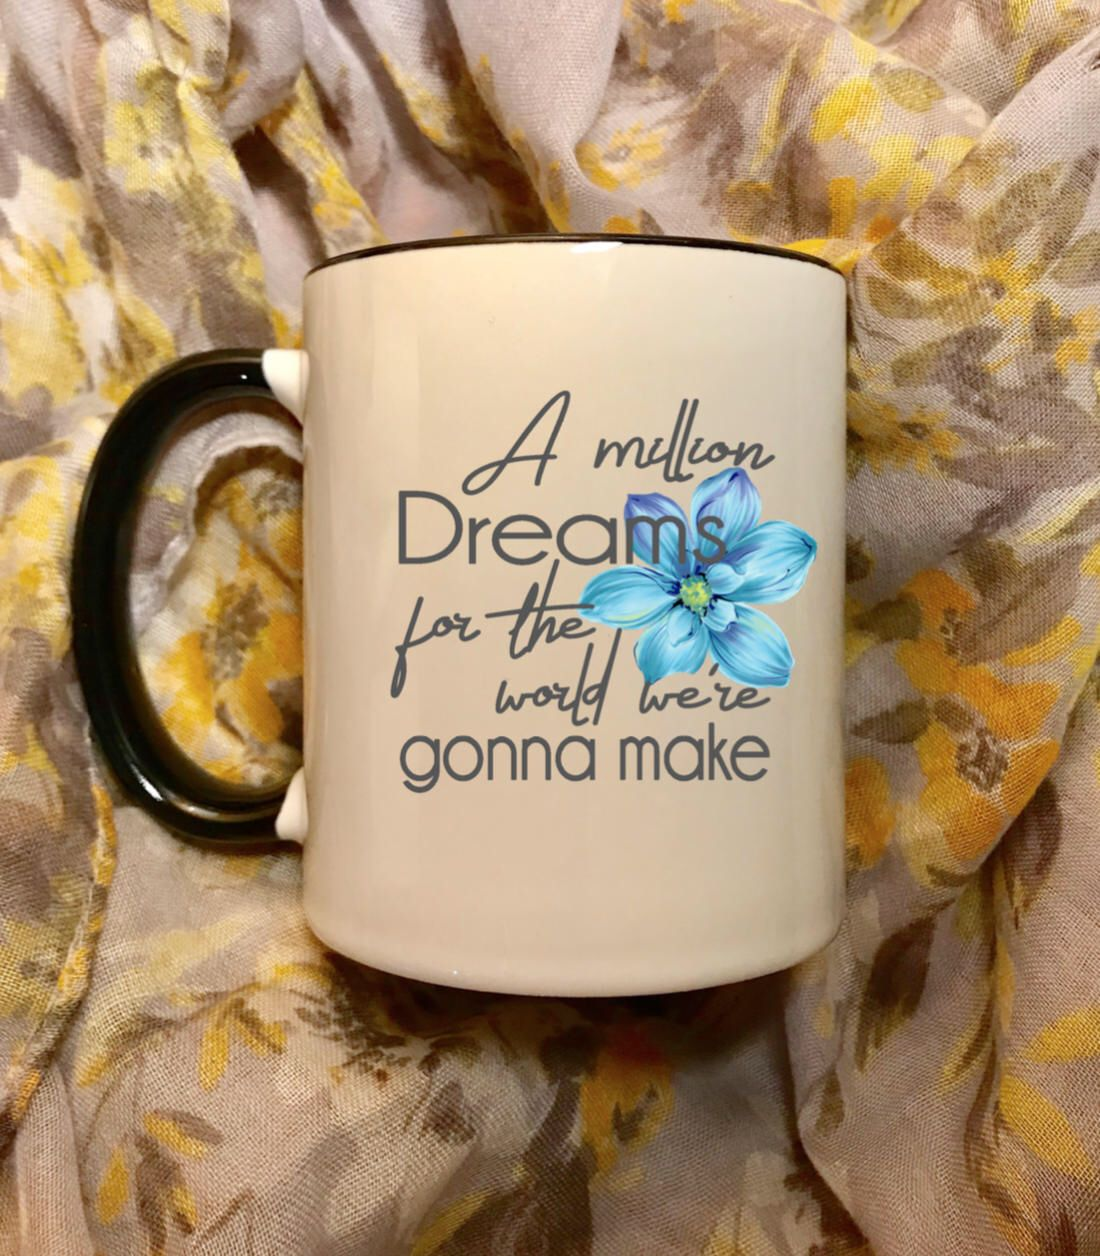 The Greatest Showman coffee cup mug A million dreams for